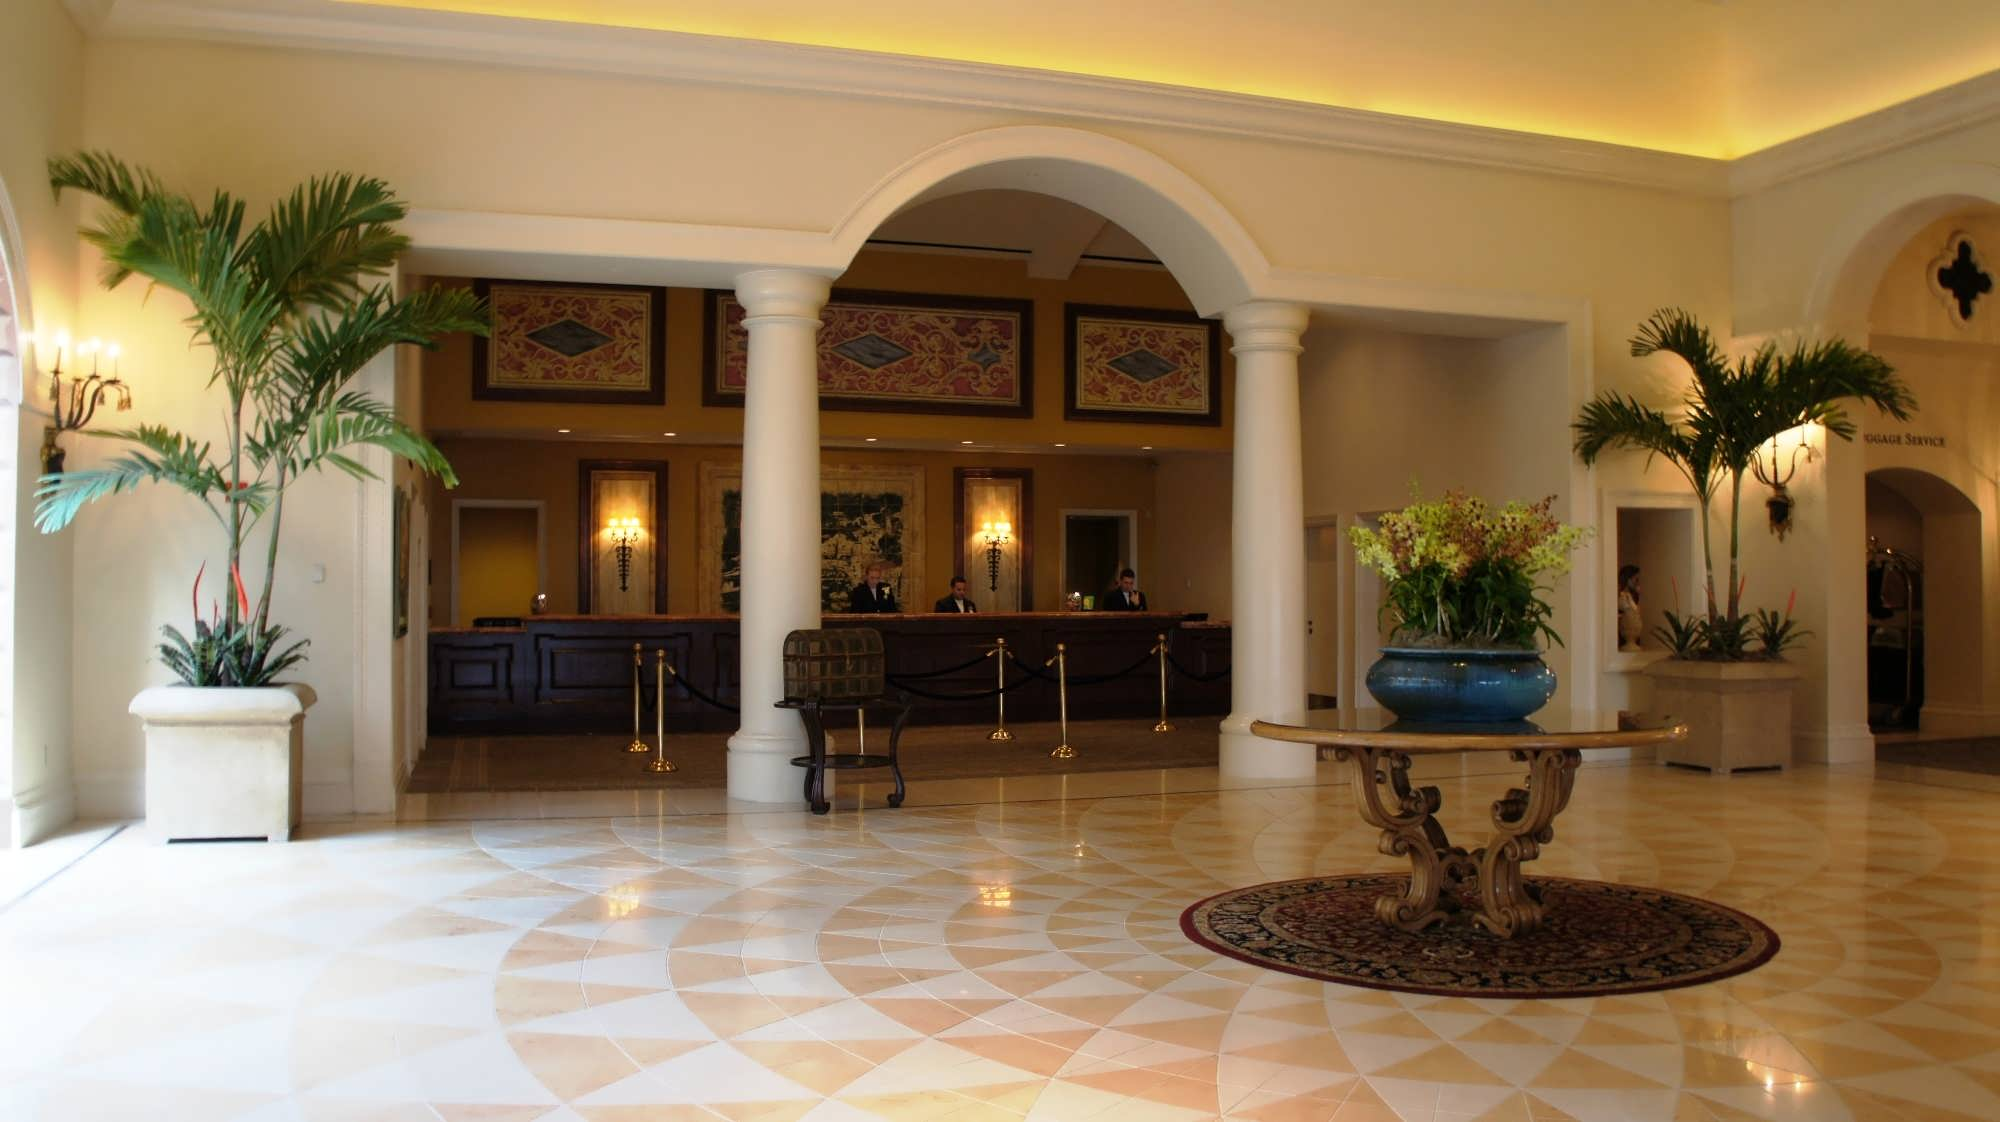 Marble floors adorn the lobby and the recessed check-in desk at Portofino Bay